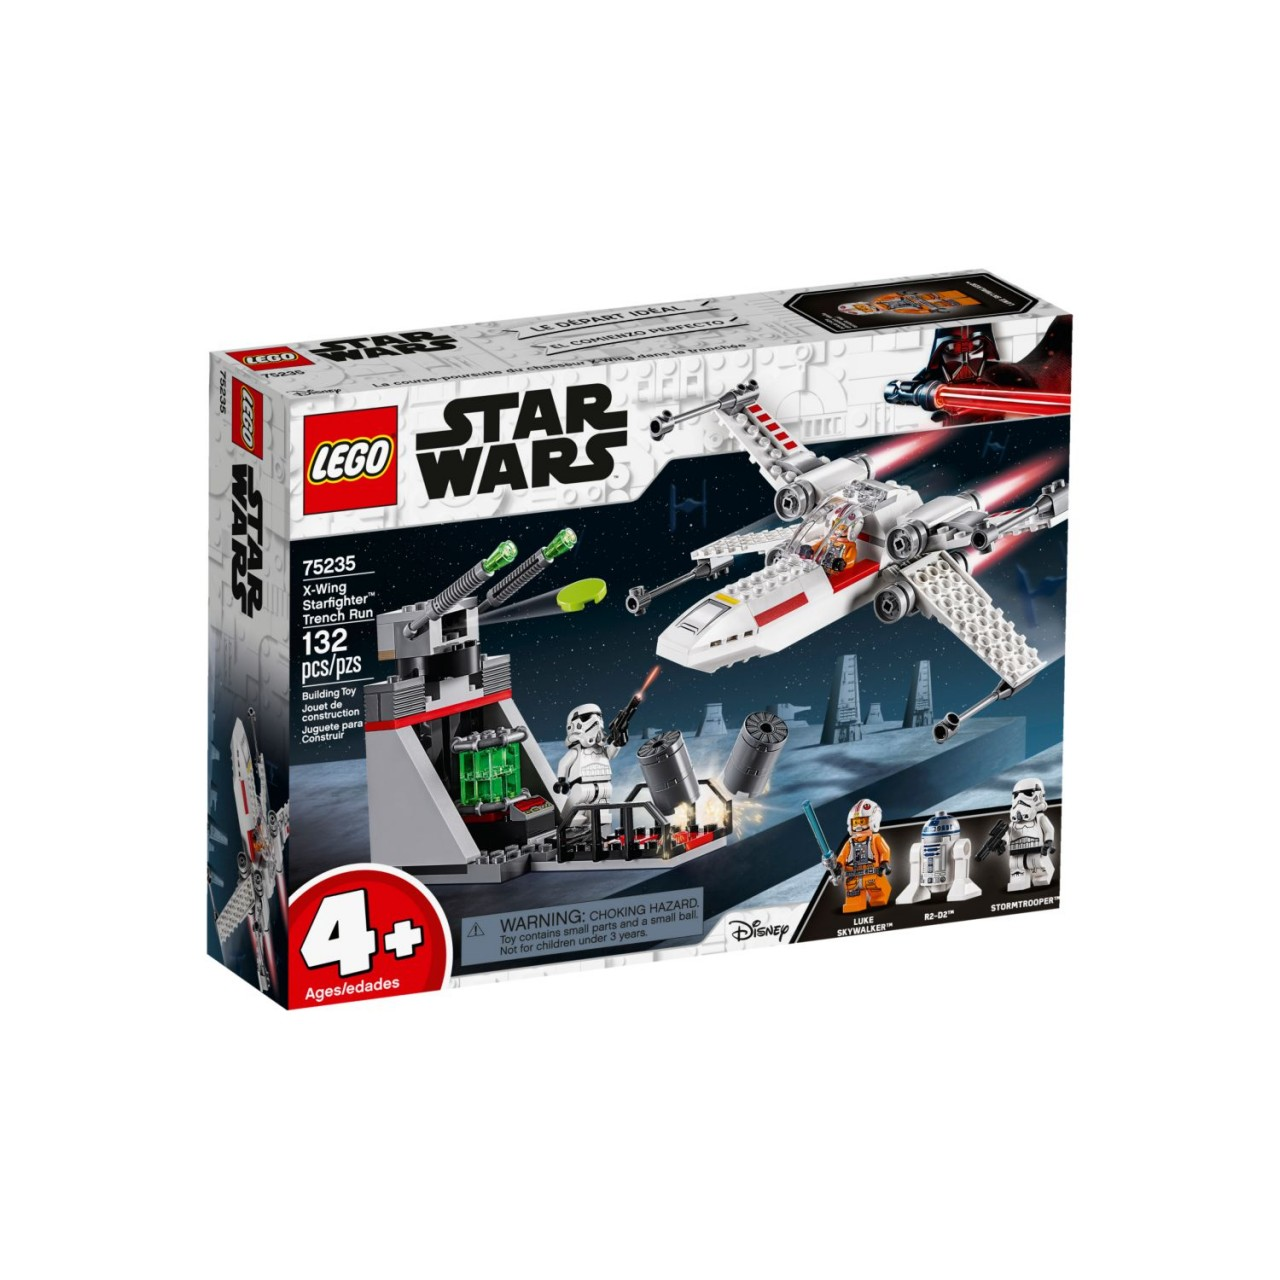 LEGO STAR WARS 75235 X-Wing Starfighter Trench Run